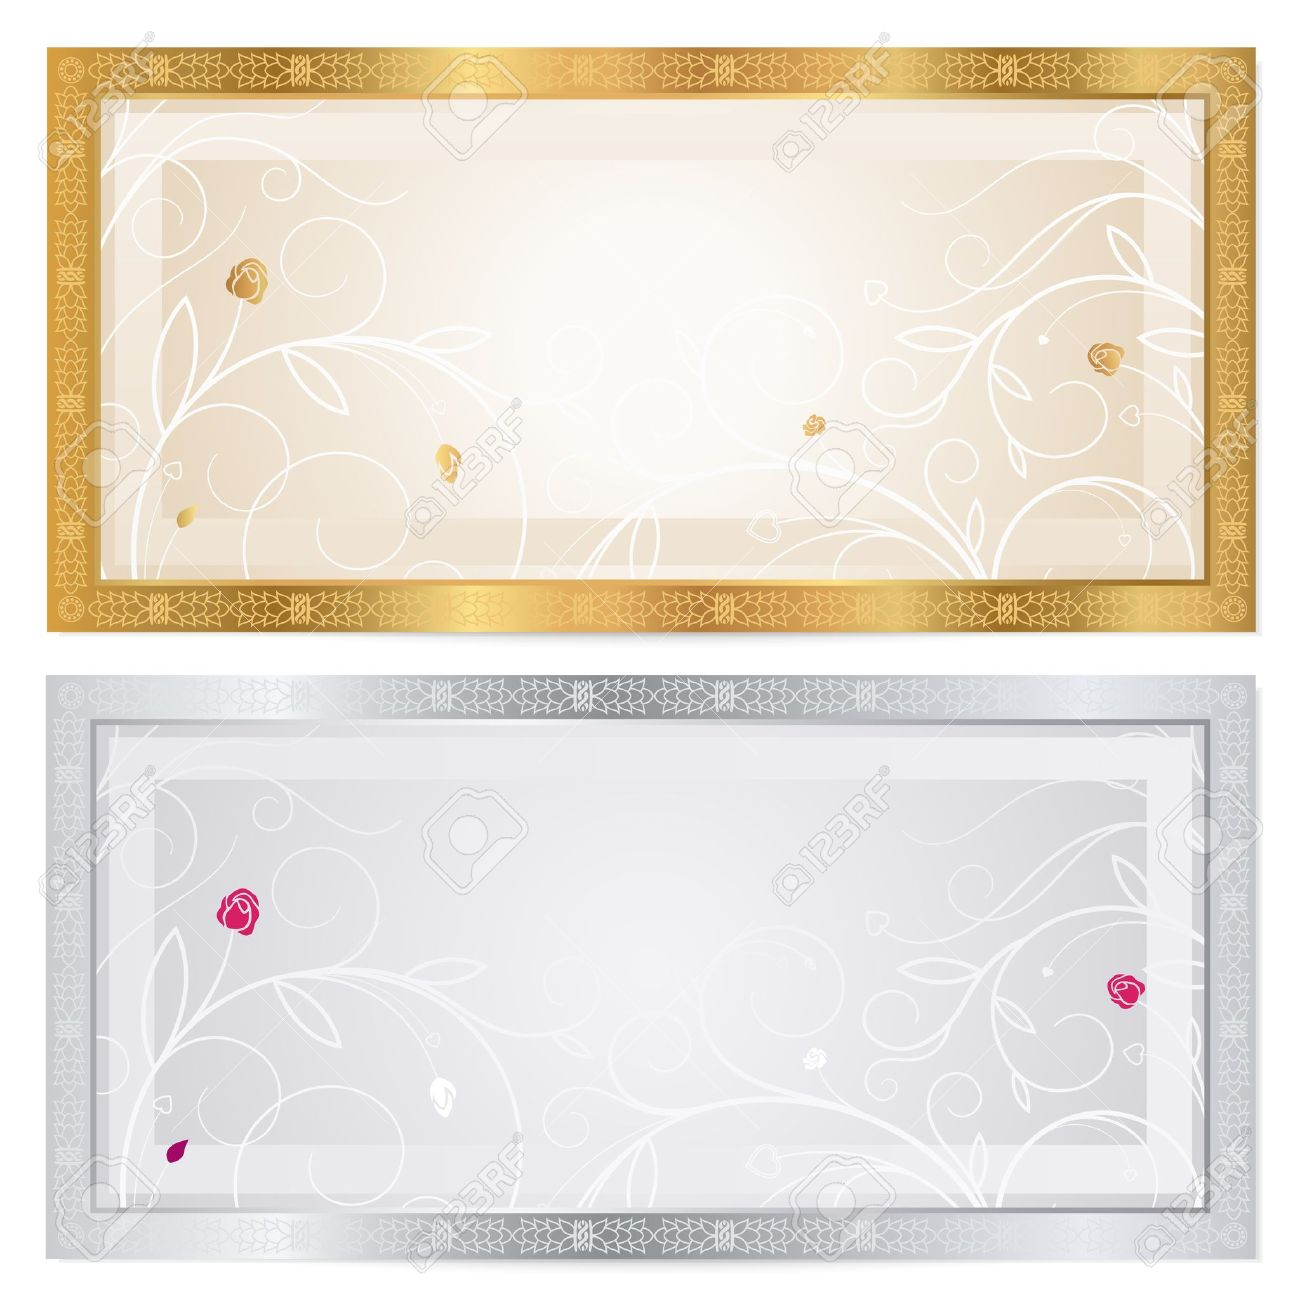 Voucher Template With Floral Pattern, Watermark And Border. This Background  Design Usable For Gift  Check Voucher Template